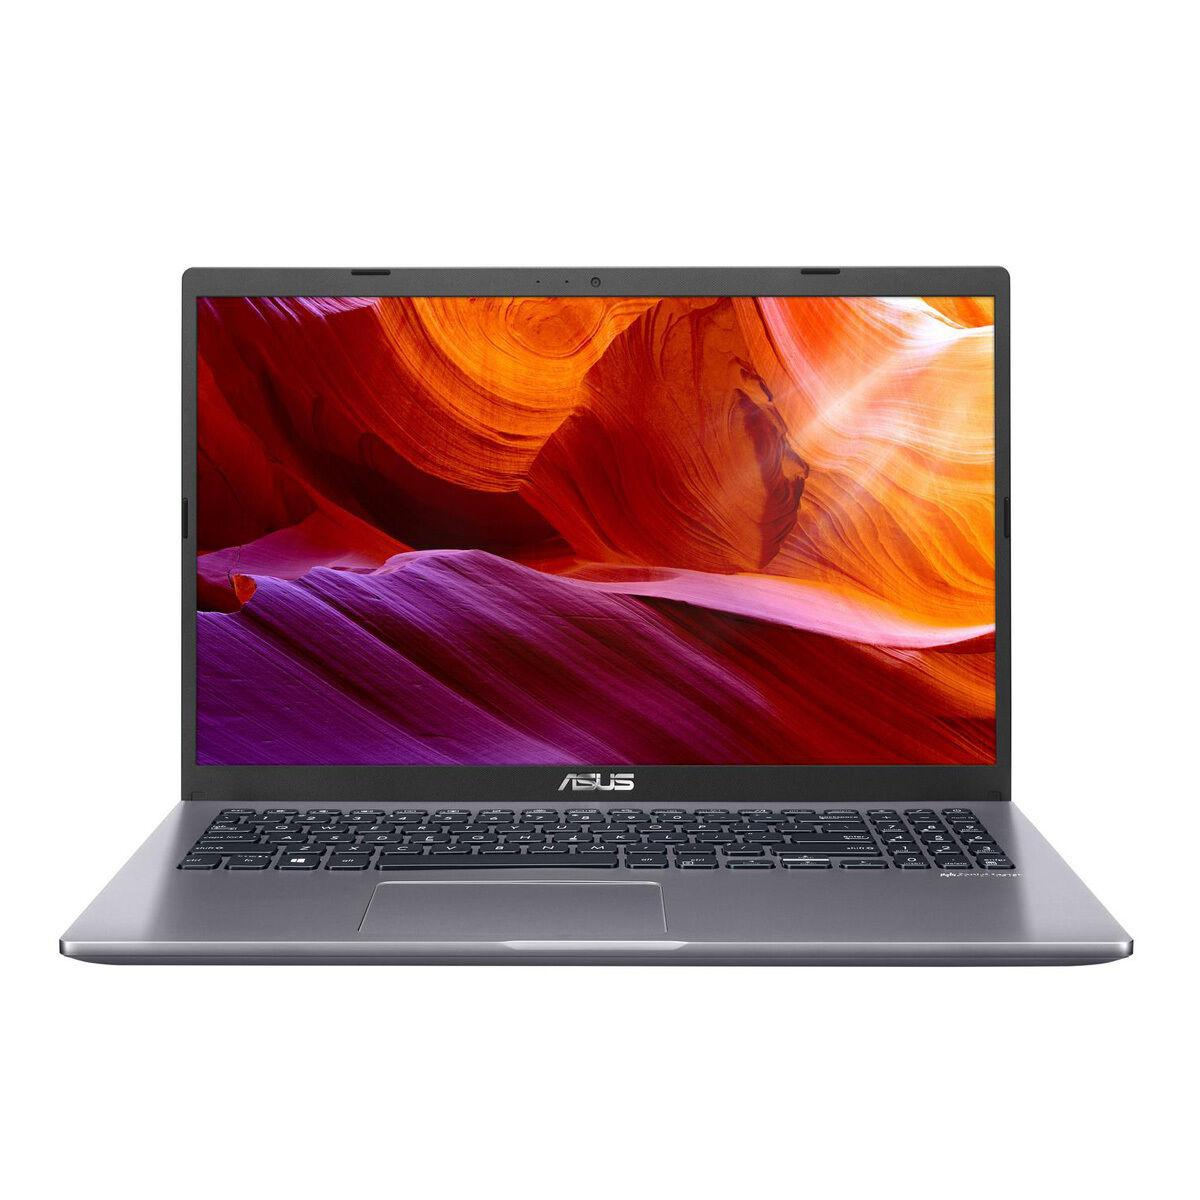 Asus Notebook D509DA-EJ394T, 15,6 Full HD, AMD Ryzen 3 3250U, 8GB RAM, 512GB SSD, Windows 10, Grau